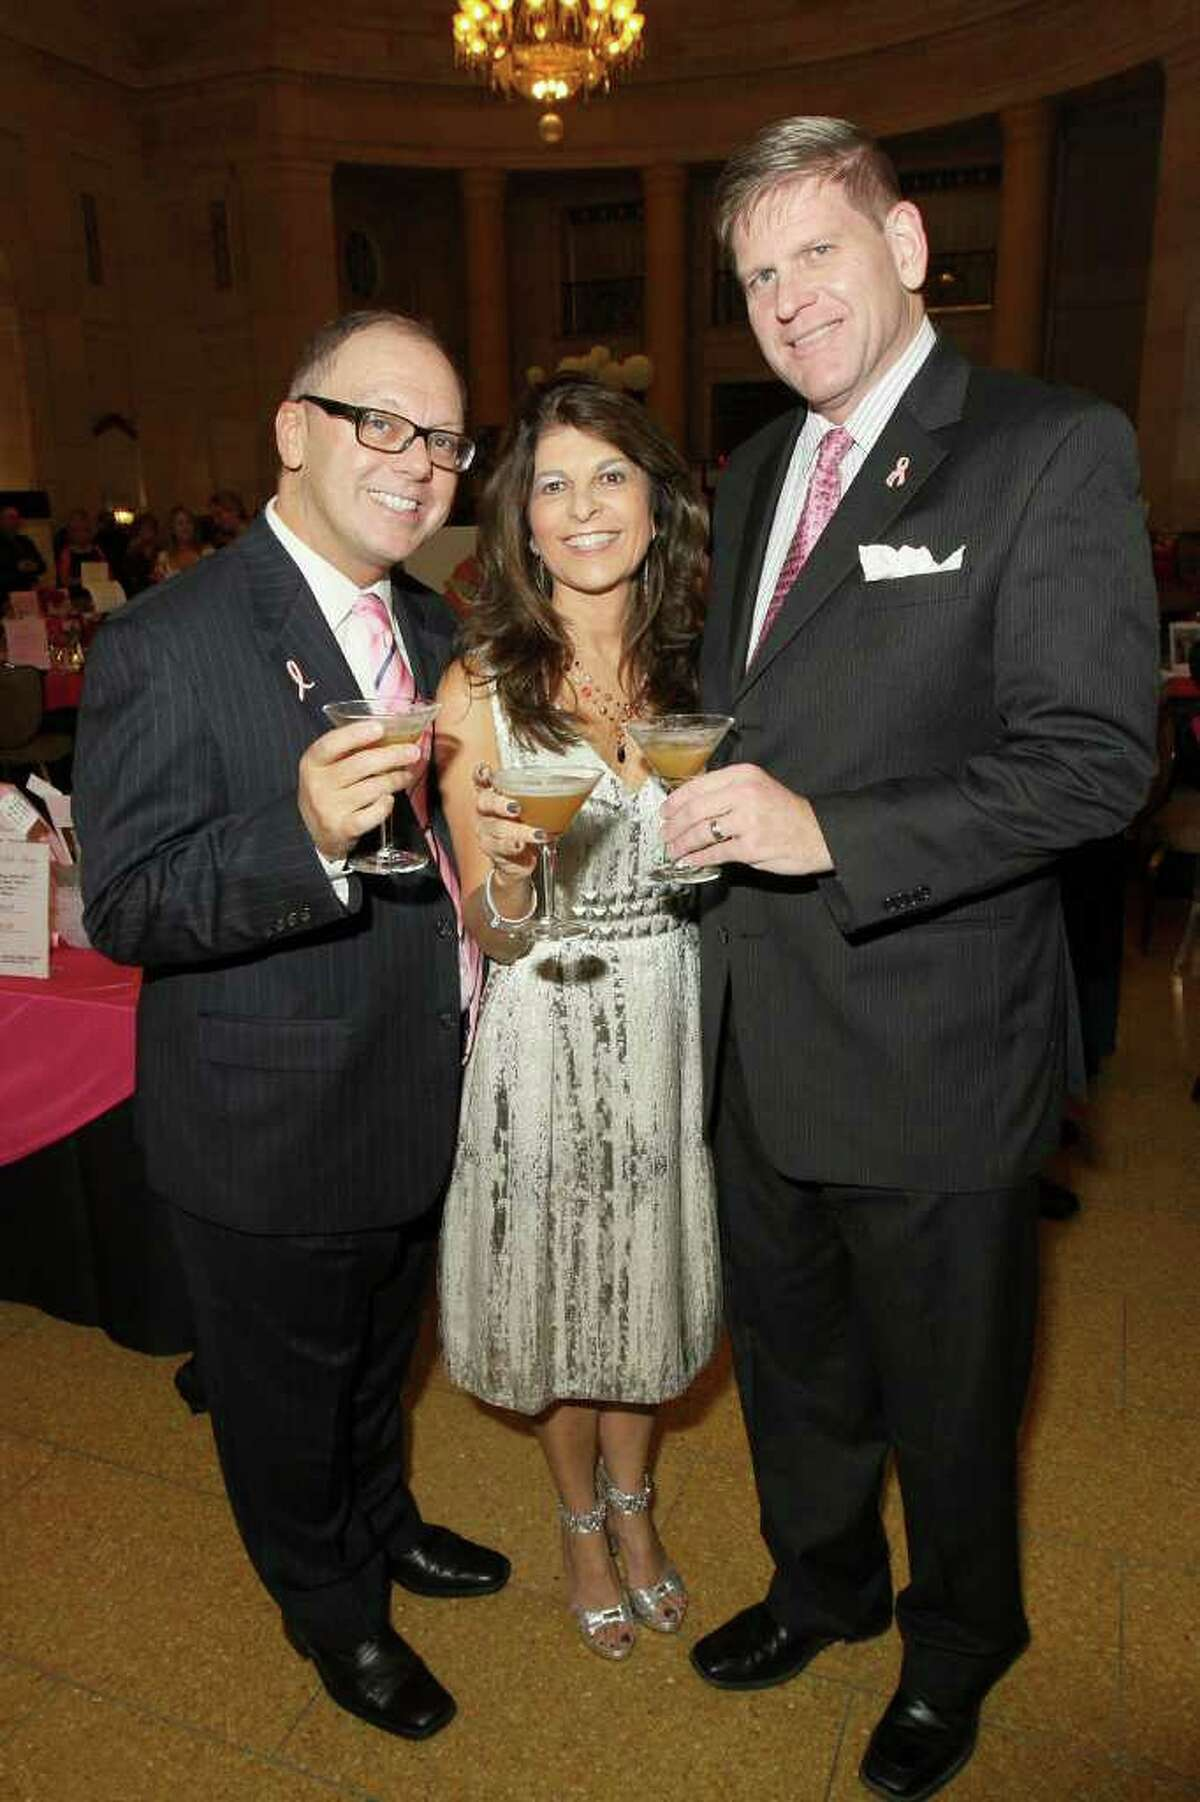 Were you Seen at The 7th Annual Pink Ball to benefit To Life! on Friday, Nov. 4, 2011?